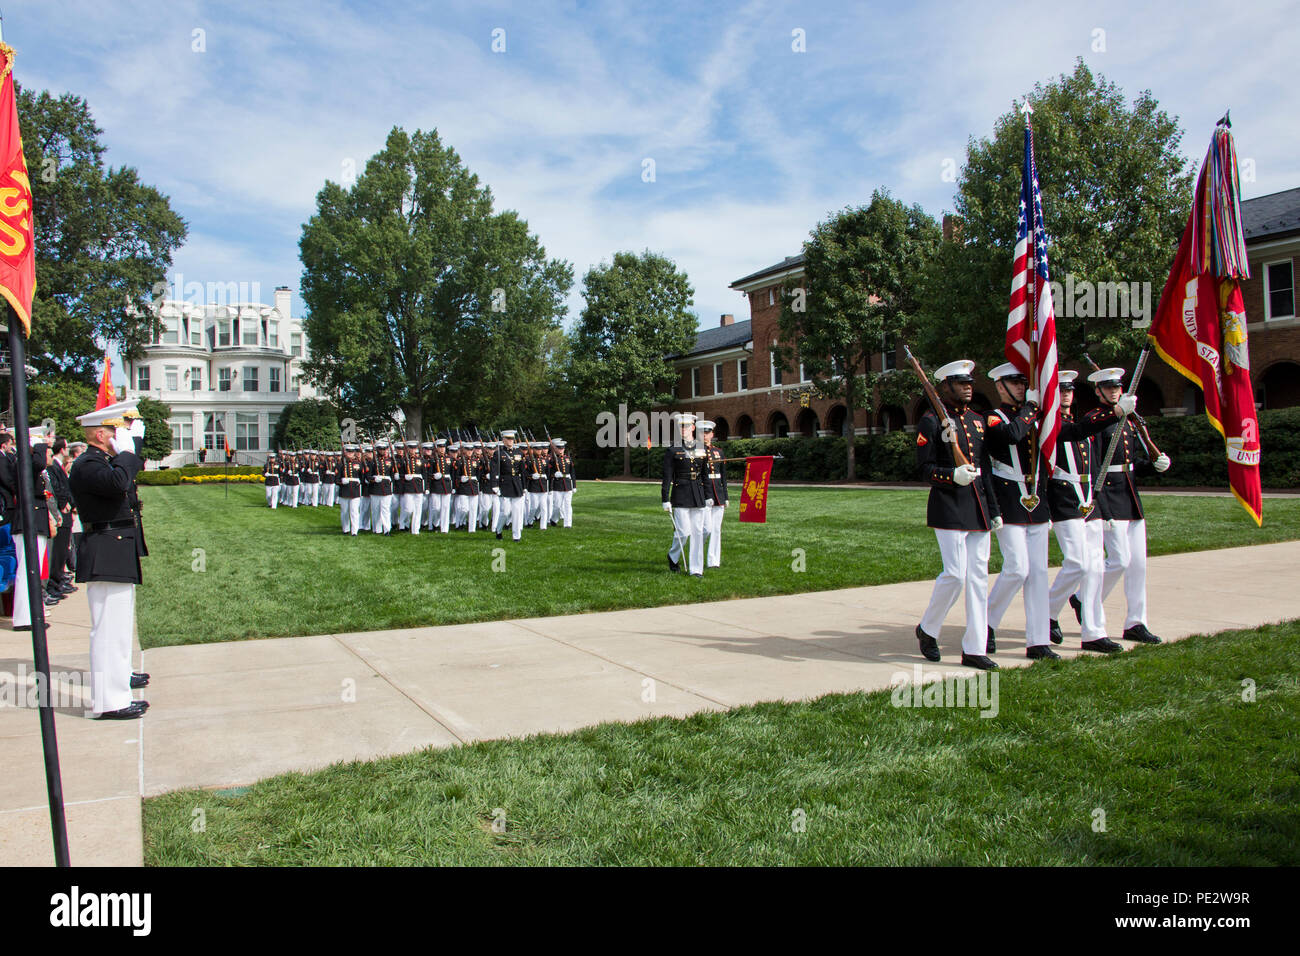 Commandant of the Marine Corps, Gen. Robert B. Neller and Gen. Joseph F. Dunford, Jr. salute the Marine Corps colors during the Passage of Command at Marine Barracks Washington, D.C., Sept. 24, 2015. Neller took command from Dunford as the 37th Commandant of the Marine Corps. (U.S. Marine Corps photo by Sgt. Gabriela Garcia/Released) Stock Photo